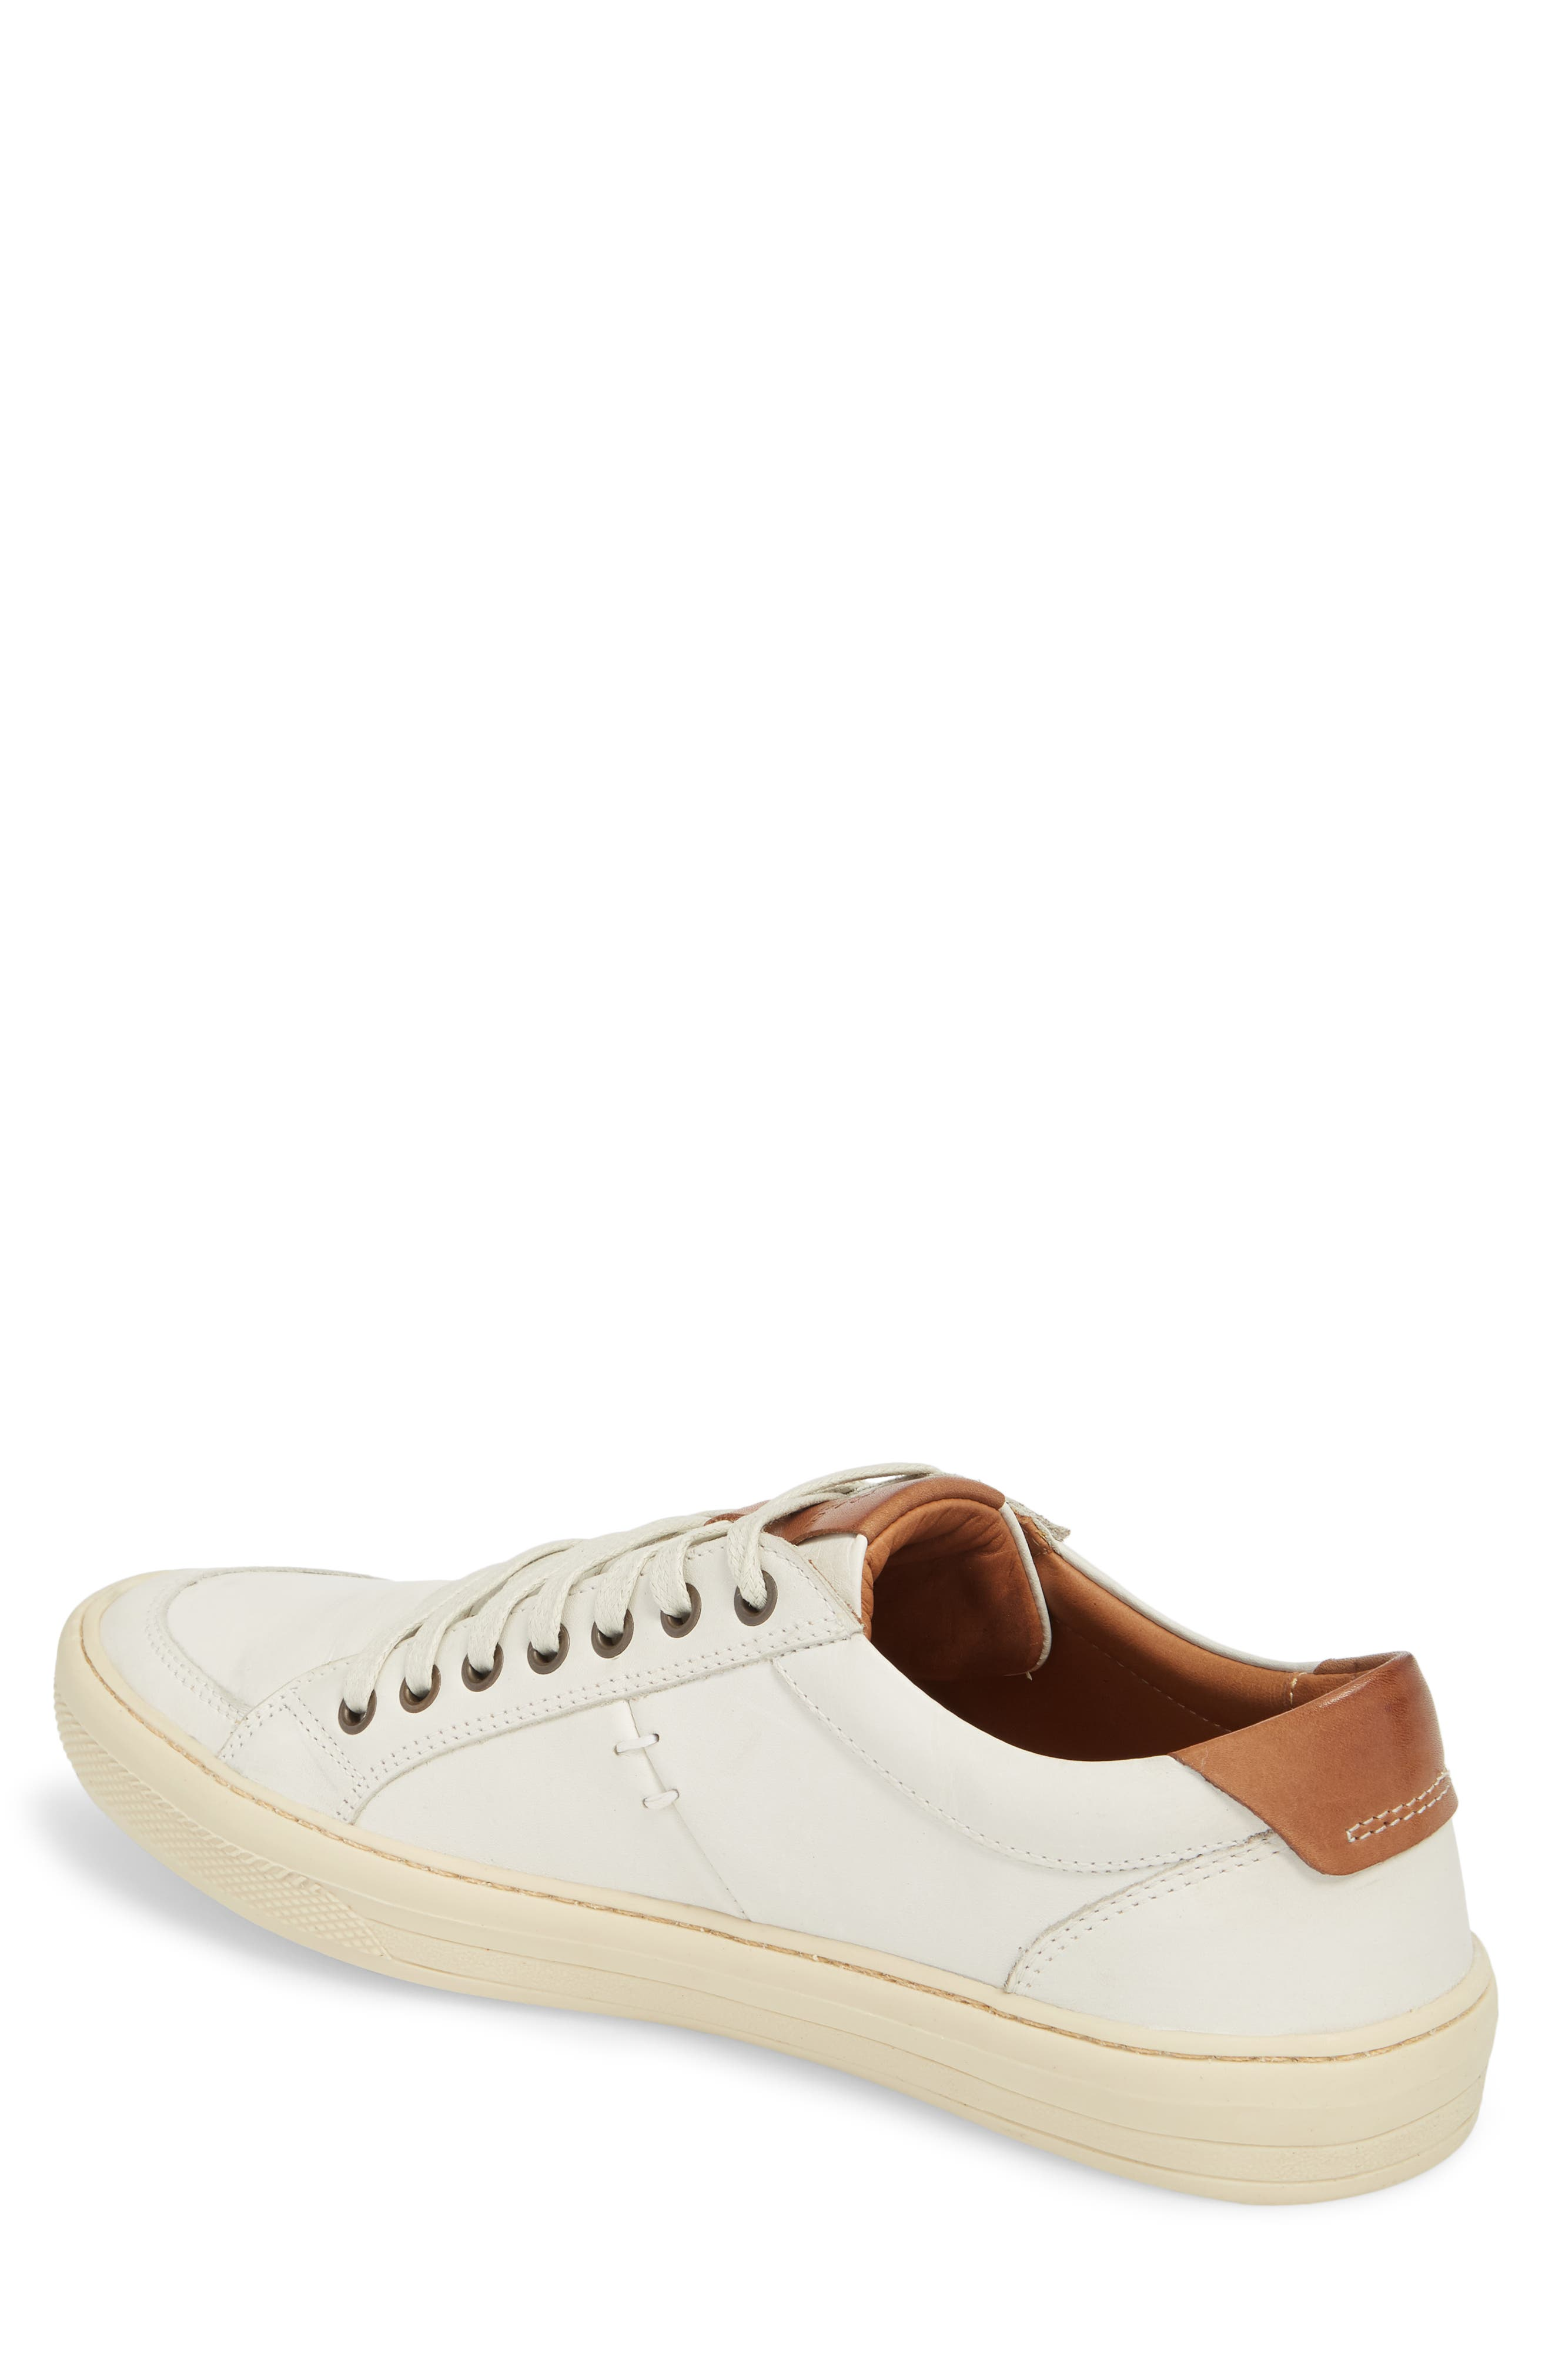 Bilac Low Top Sneaker,                             Alternate thumbnail 2, color,                             100